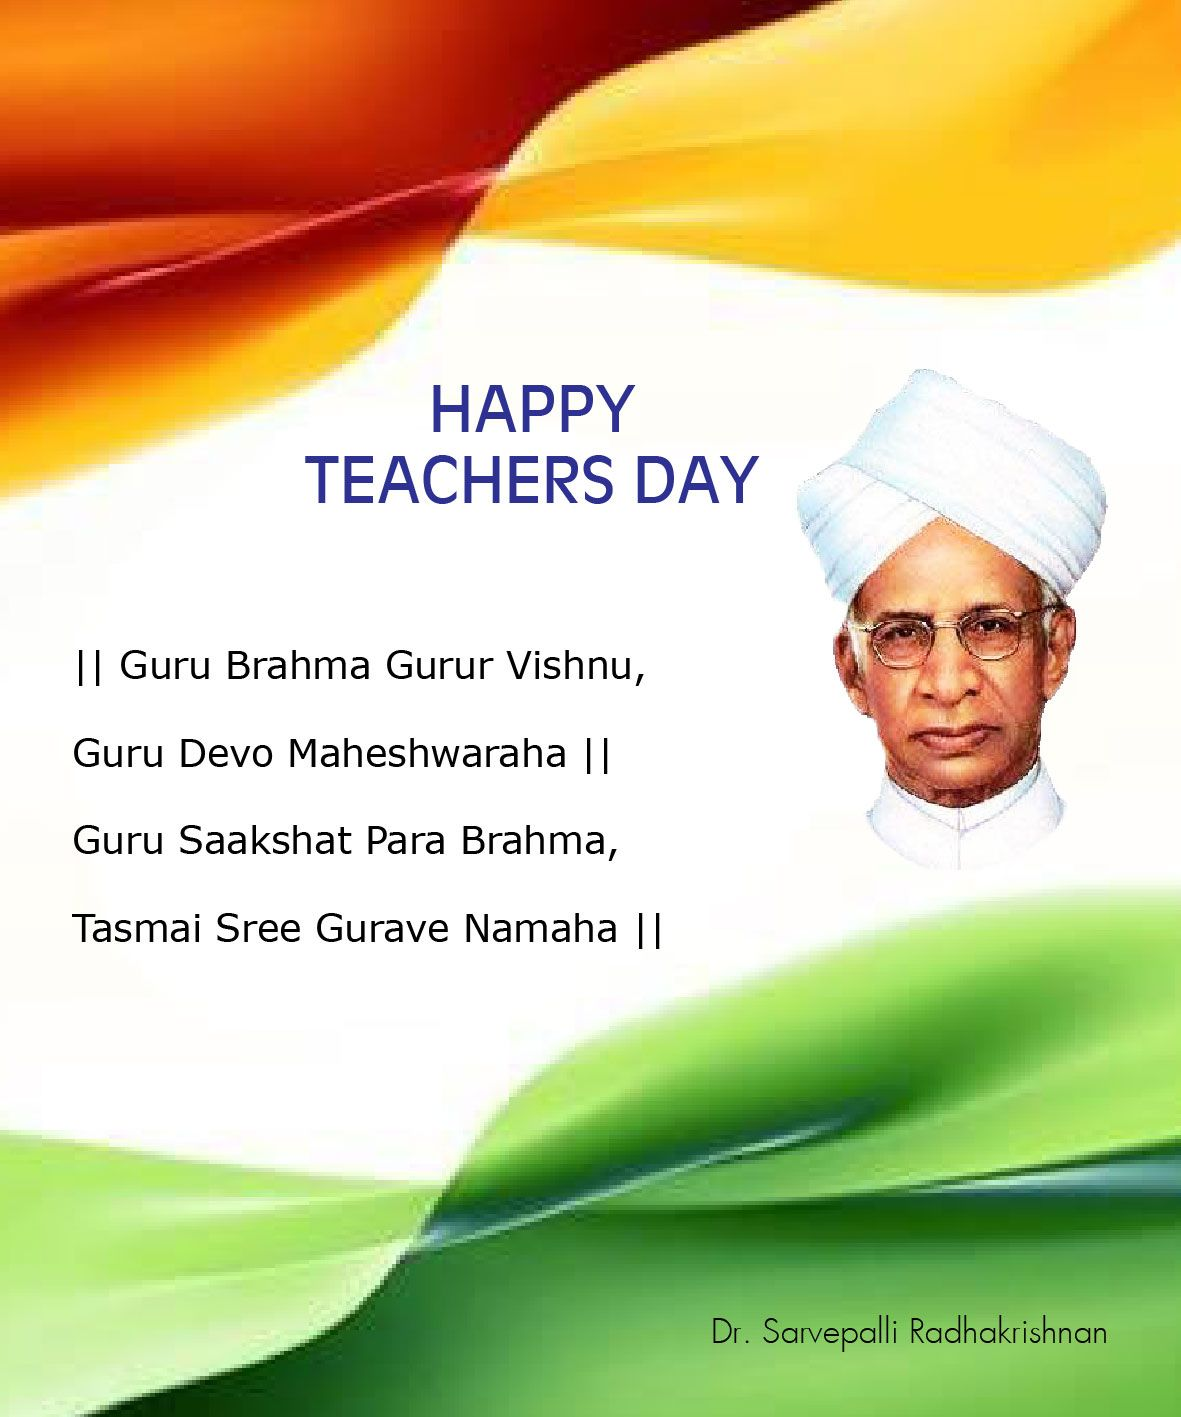 Happy Teachers Day Celebrated On The Birth Anniversary Of Dr Radhakrishnan Chennaiungalkaiyil Happy Teachers Day Teachers Day Happy Teachers Day Wishes